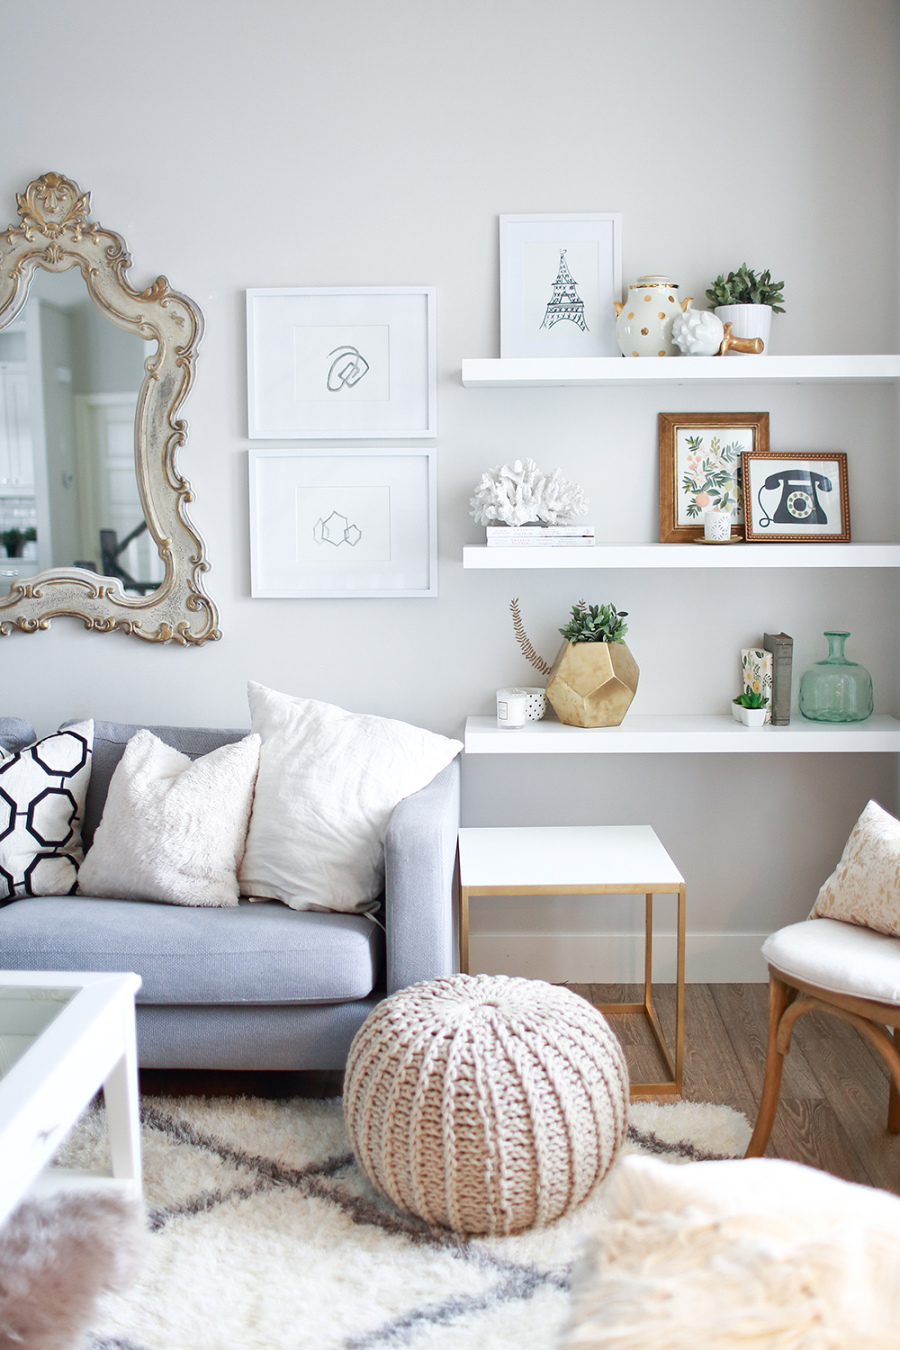 Easy Ways To Organize Your Living Room This Spring | By Design Fixation